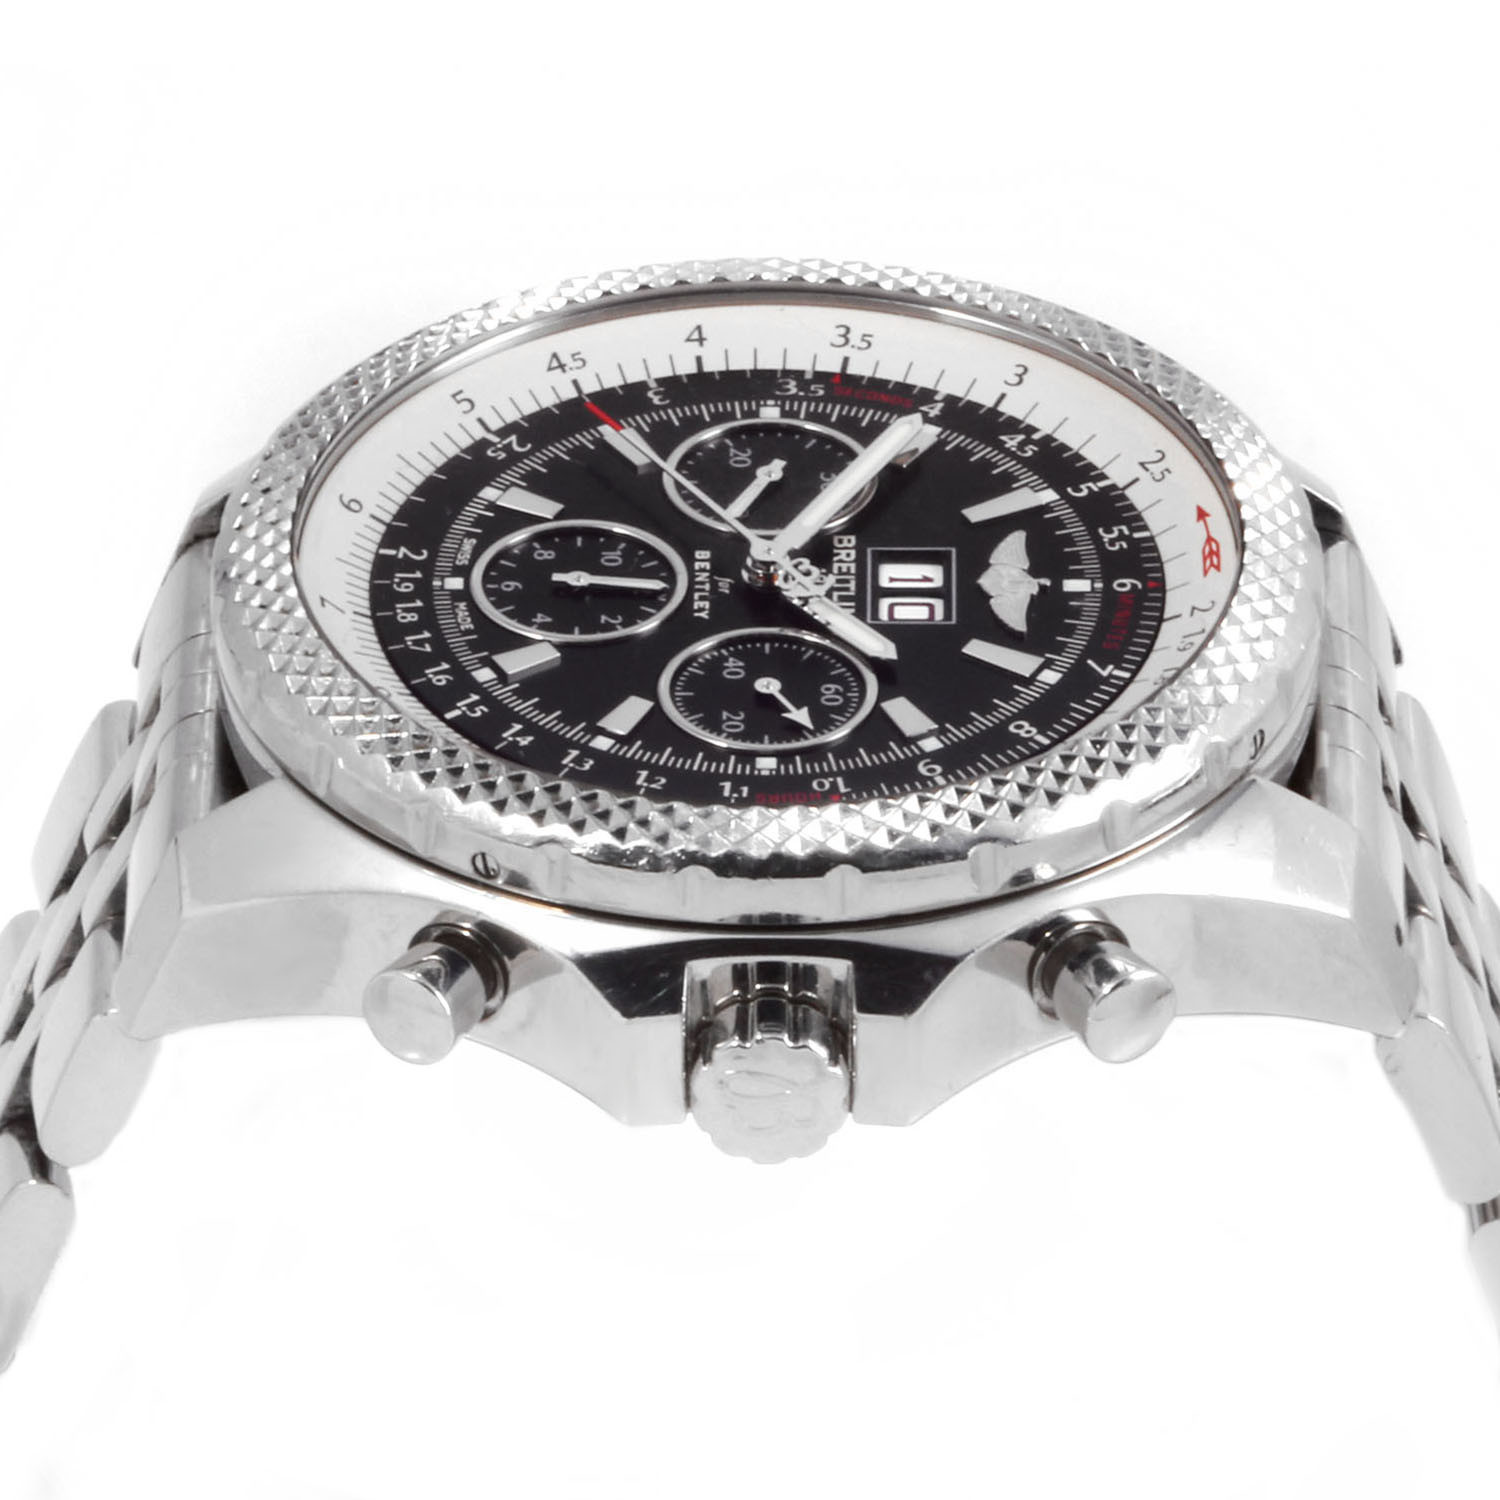 Pre Owned Bentley For Sale: Breitling Bentley Automatic // A44364 // Pre-Owned